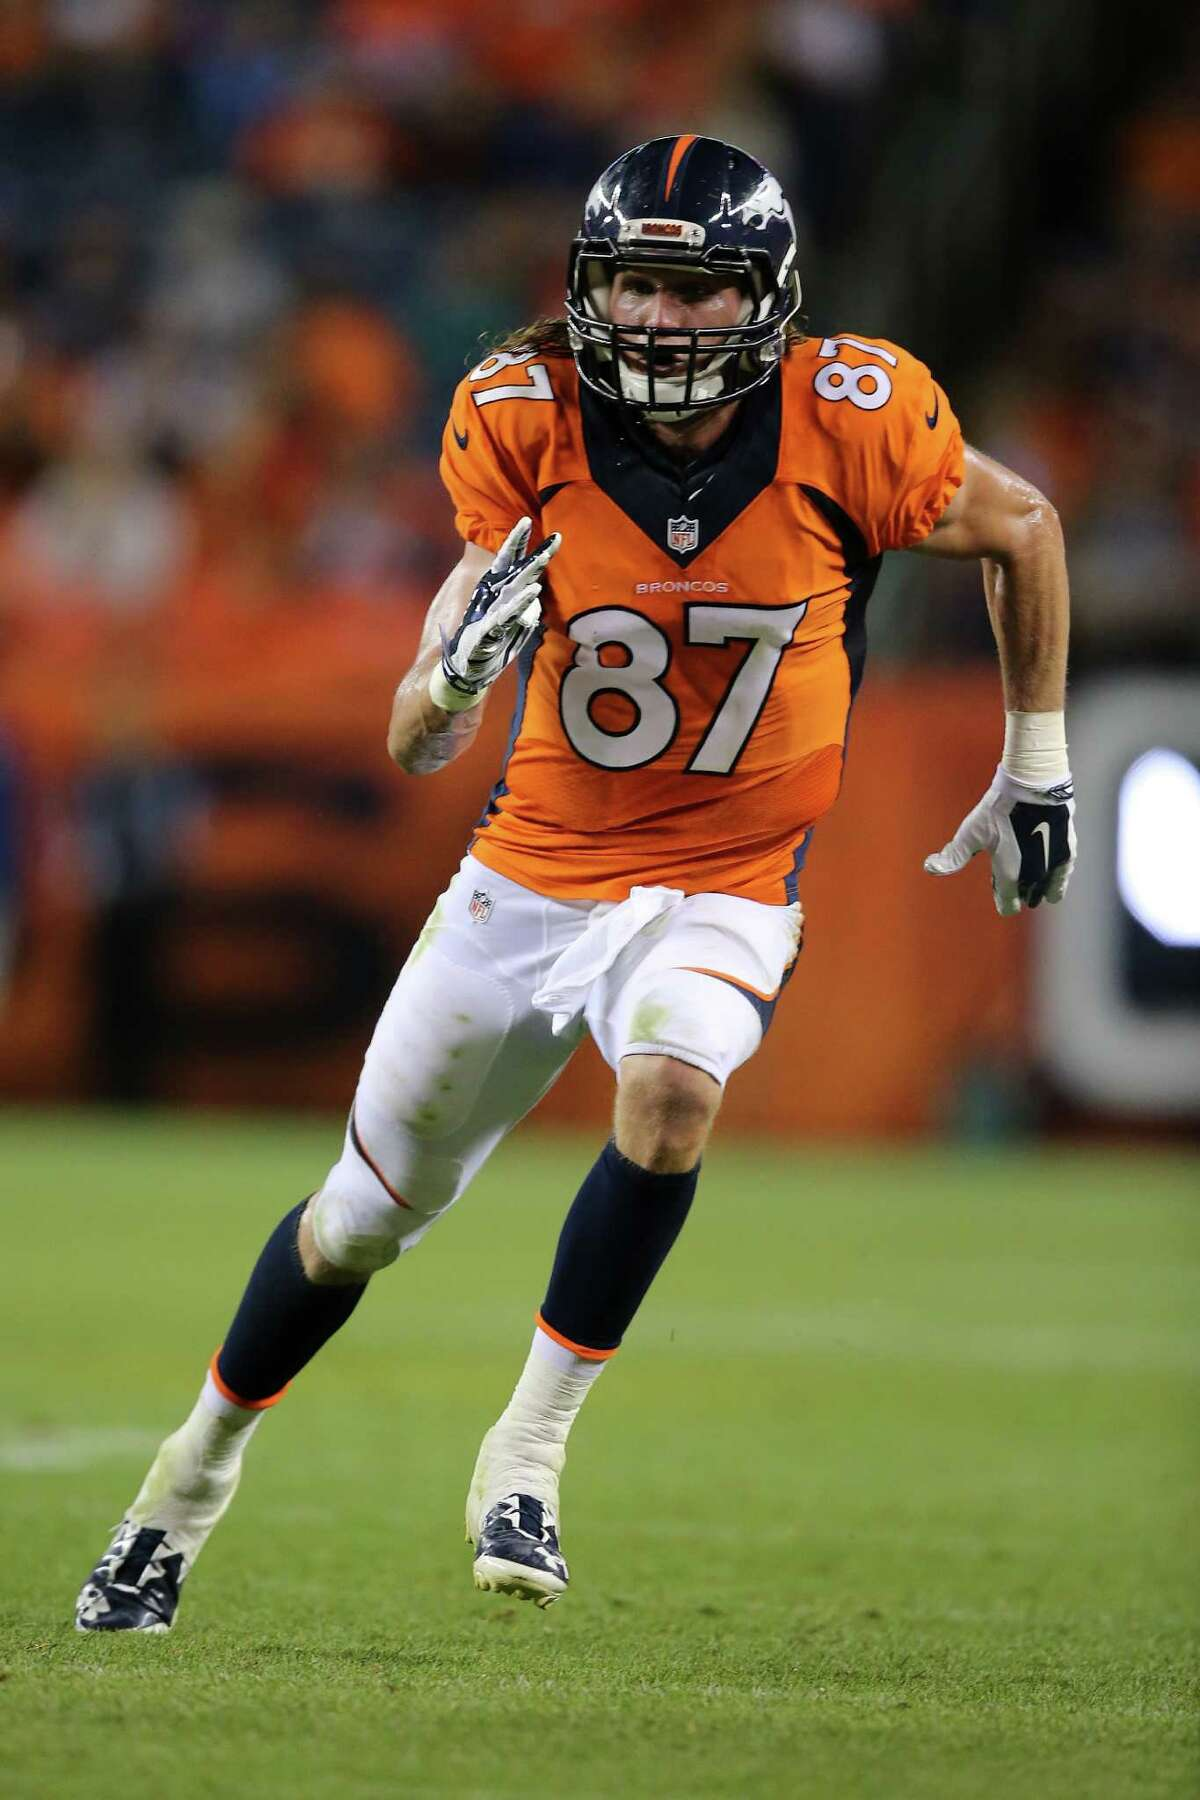 DENVER, CO - SEPTEMBER 03: Wide receiver Jordan Taylor #87 of the Denver Broncos takes the field against the Arizona Cardinals during preseason action at Sports Authority Field at Mile High on September 3, 2015 in Denver, Colorado. The Cardinals defeated the Broncos 22-20.